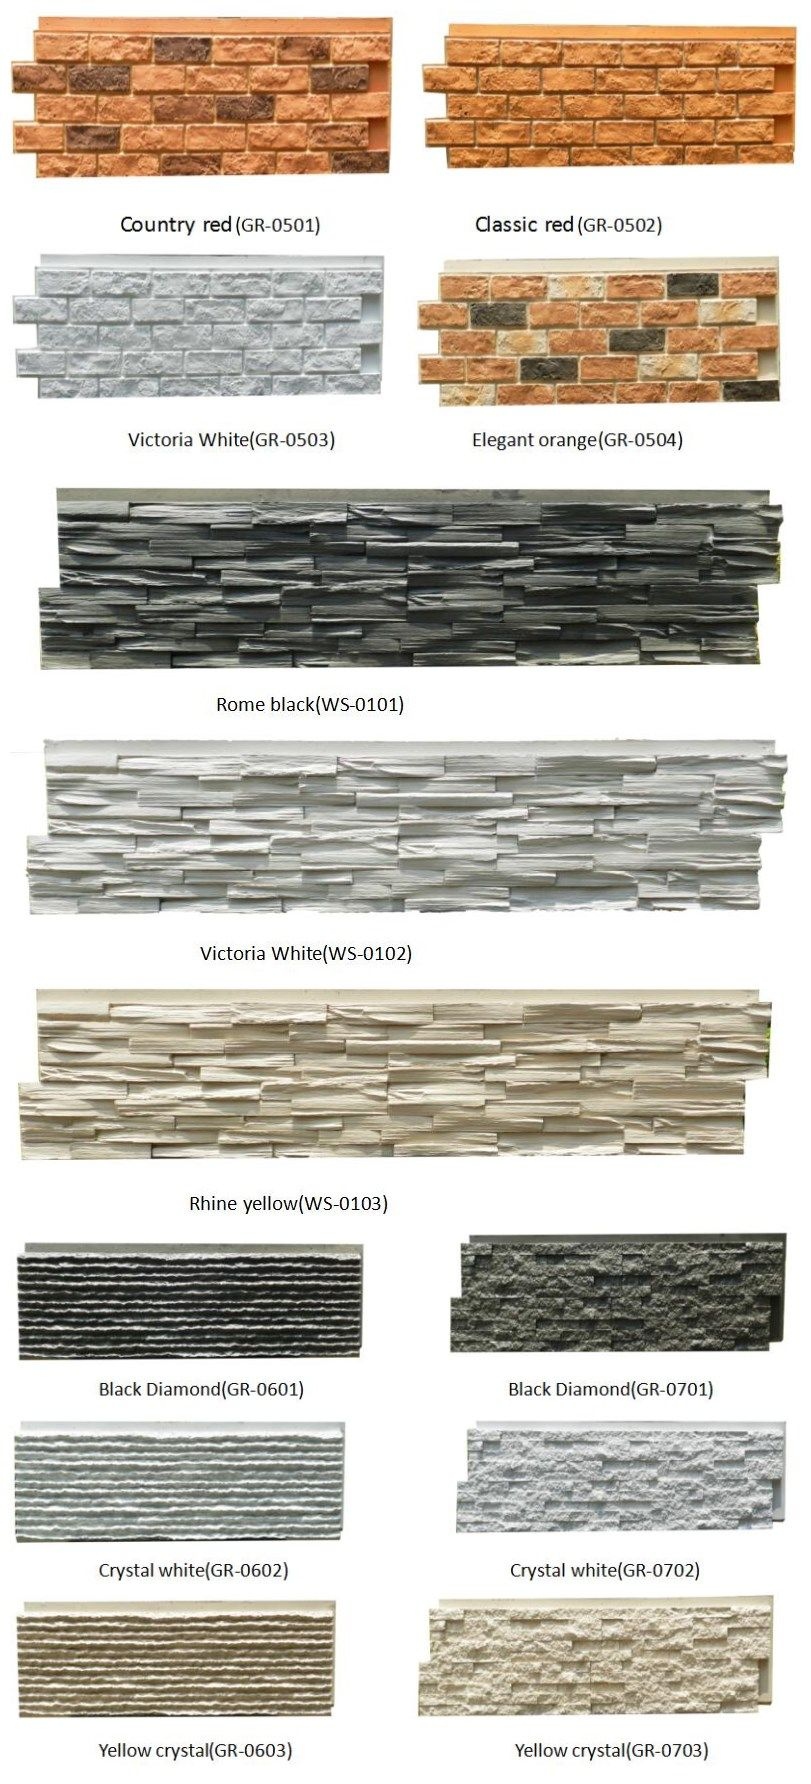 Pu Faux Stone Type And Tile Stone Cheapest Exterior Wall Cladding Artificial Stone Veneer Exterio Stone Cladding Exterior Stone Wall Cladding Stone Wall Design